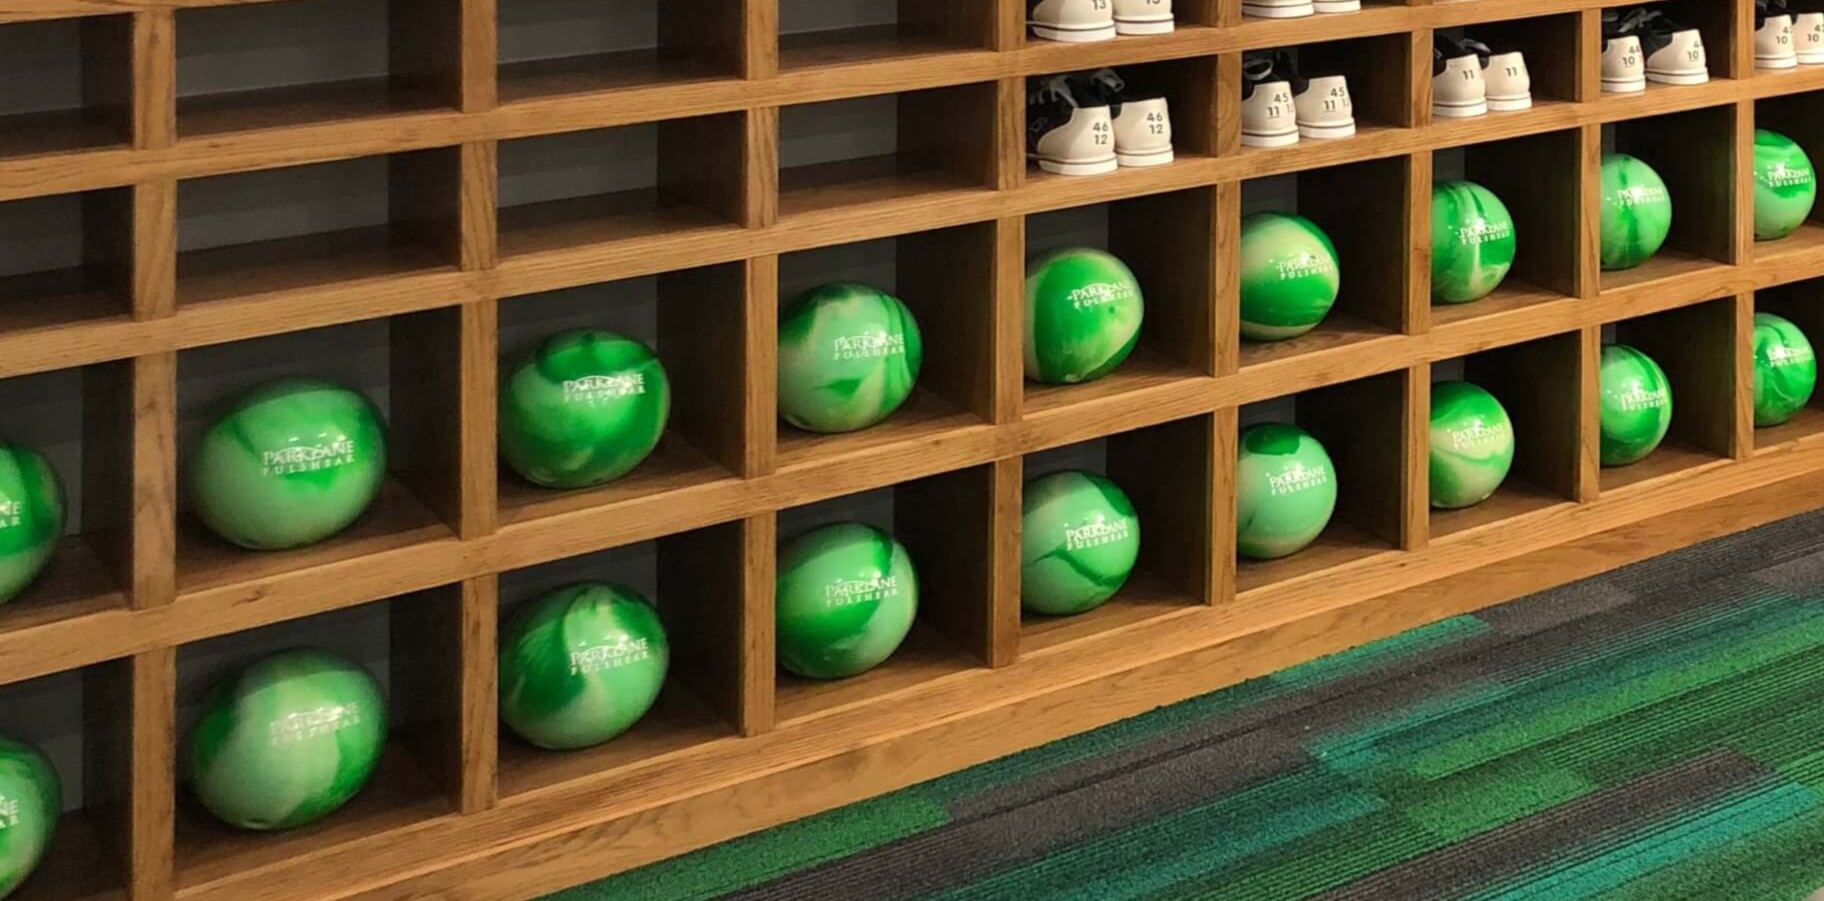 Custom bowling balls in cubbie holes. They are a swirl of light green and dark green.